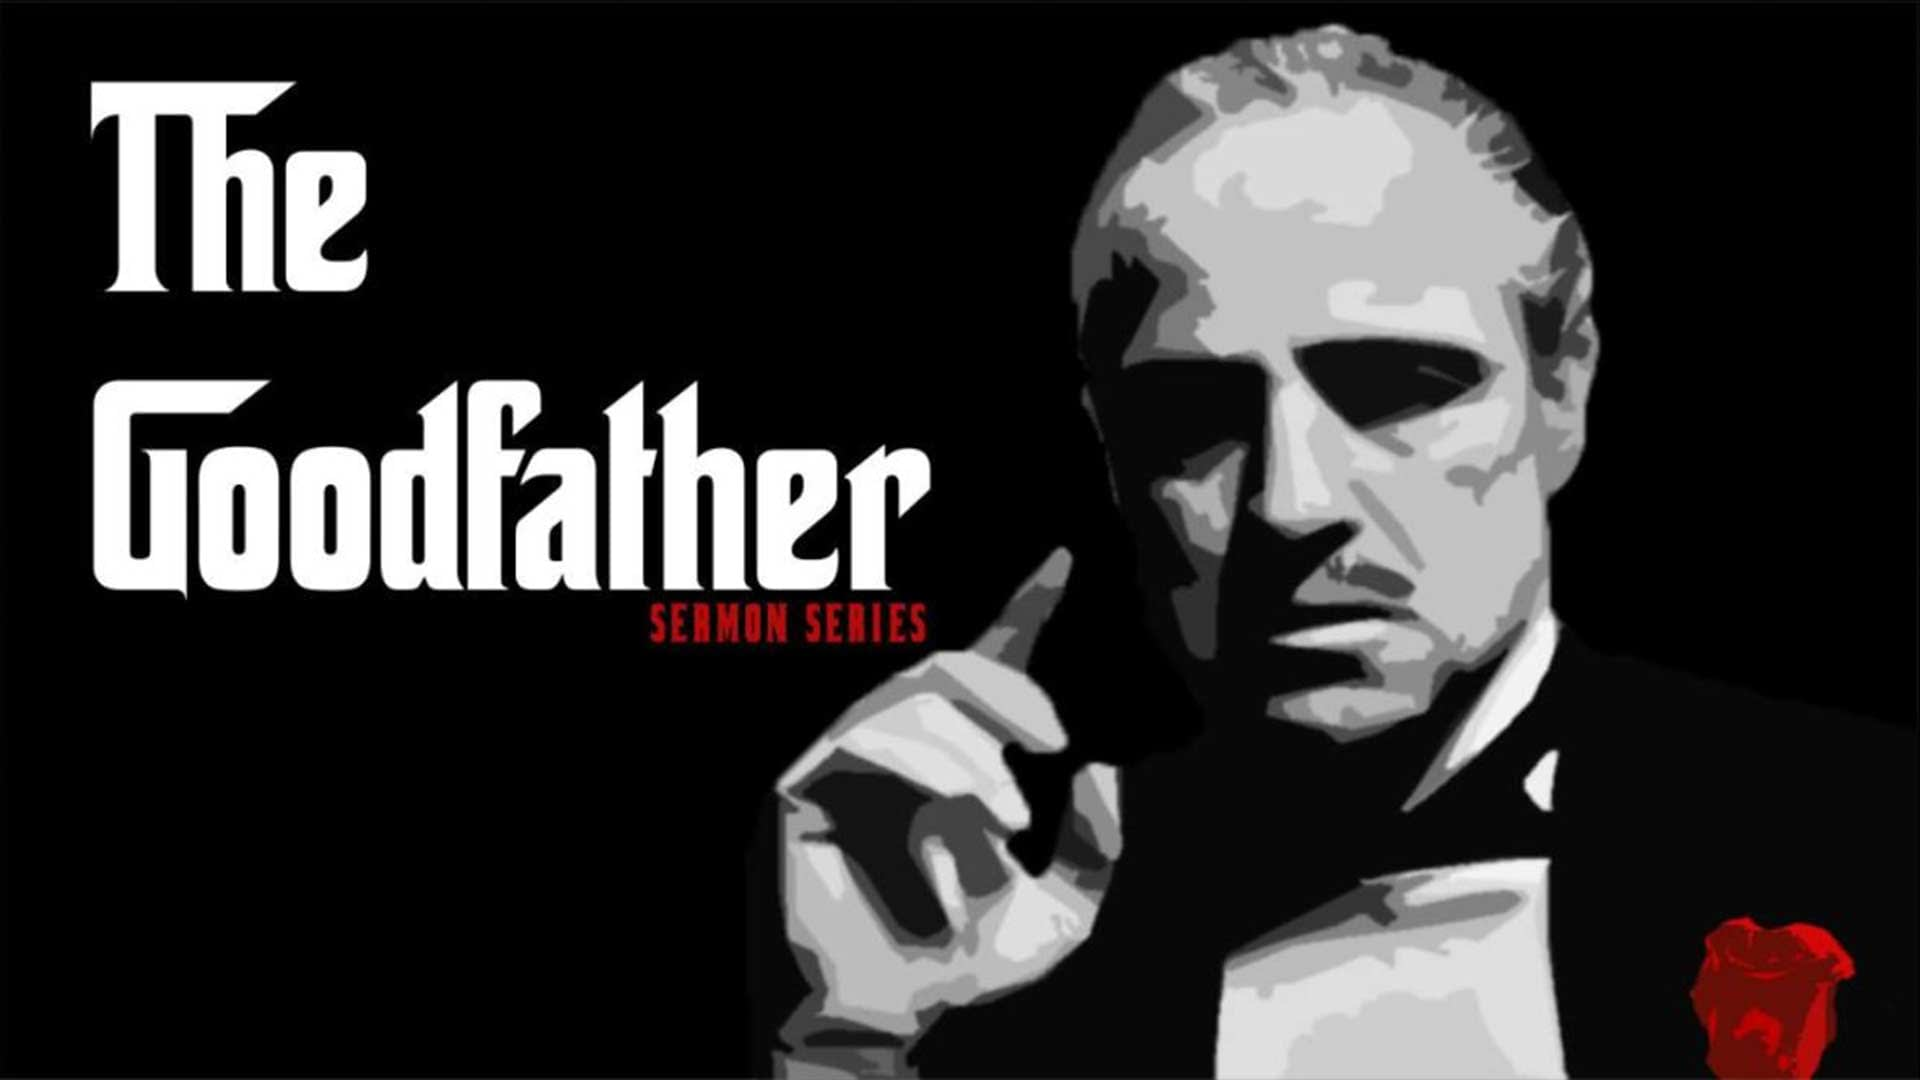 The Goodfather Sermon Series